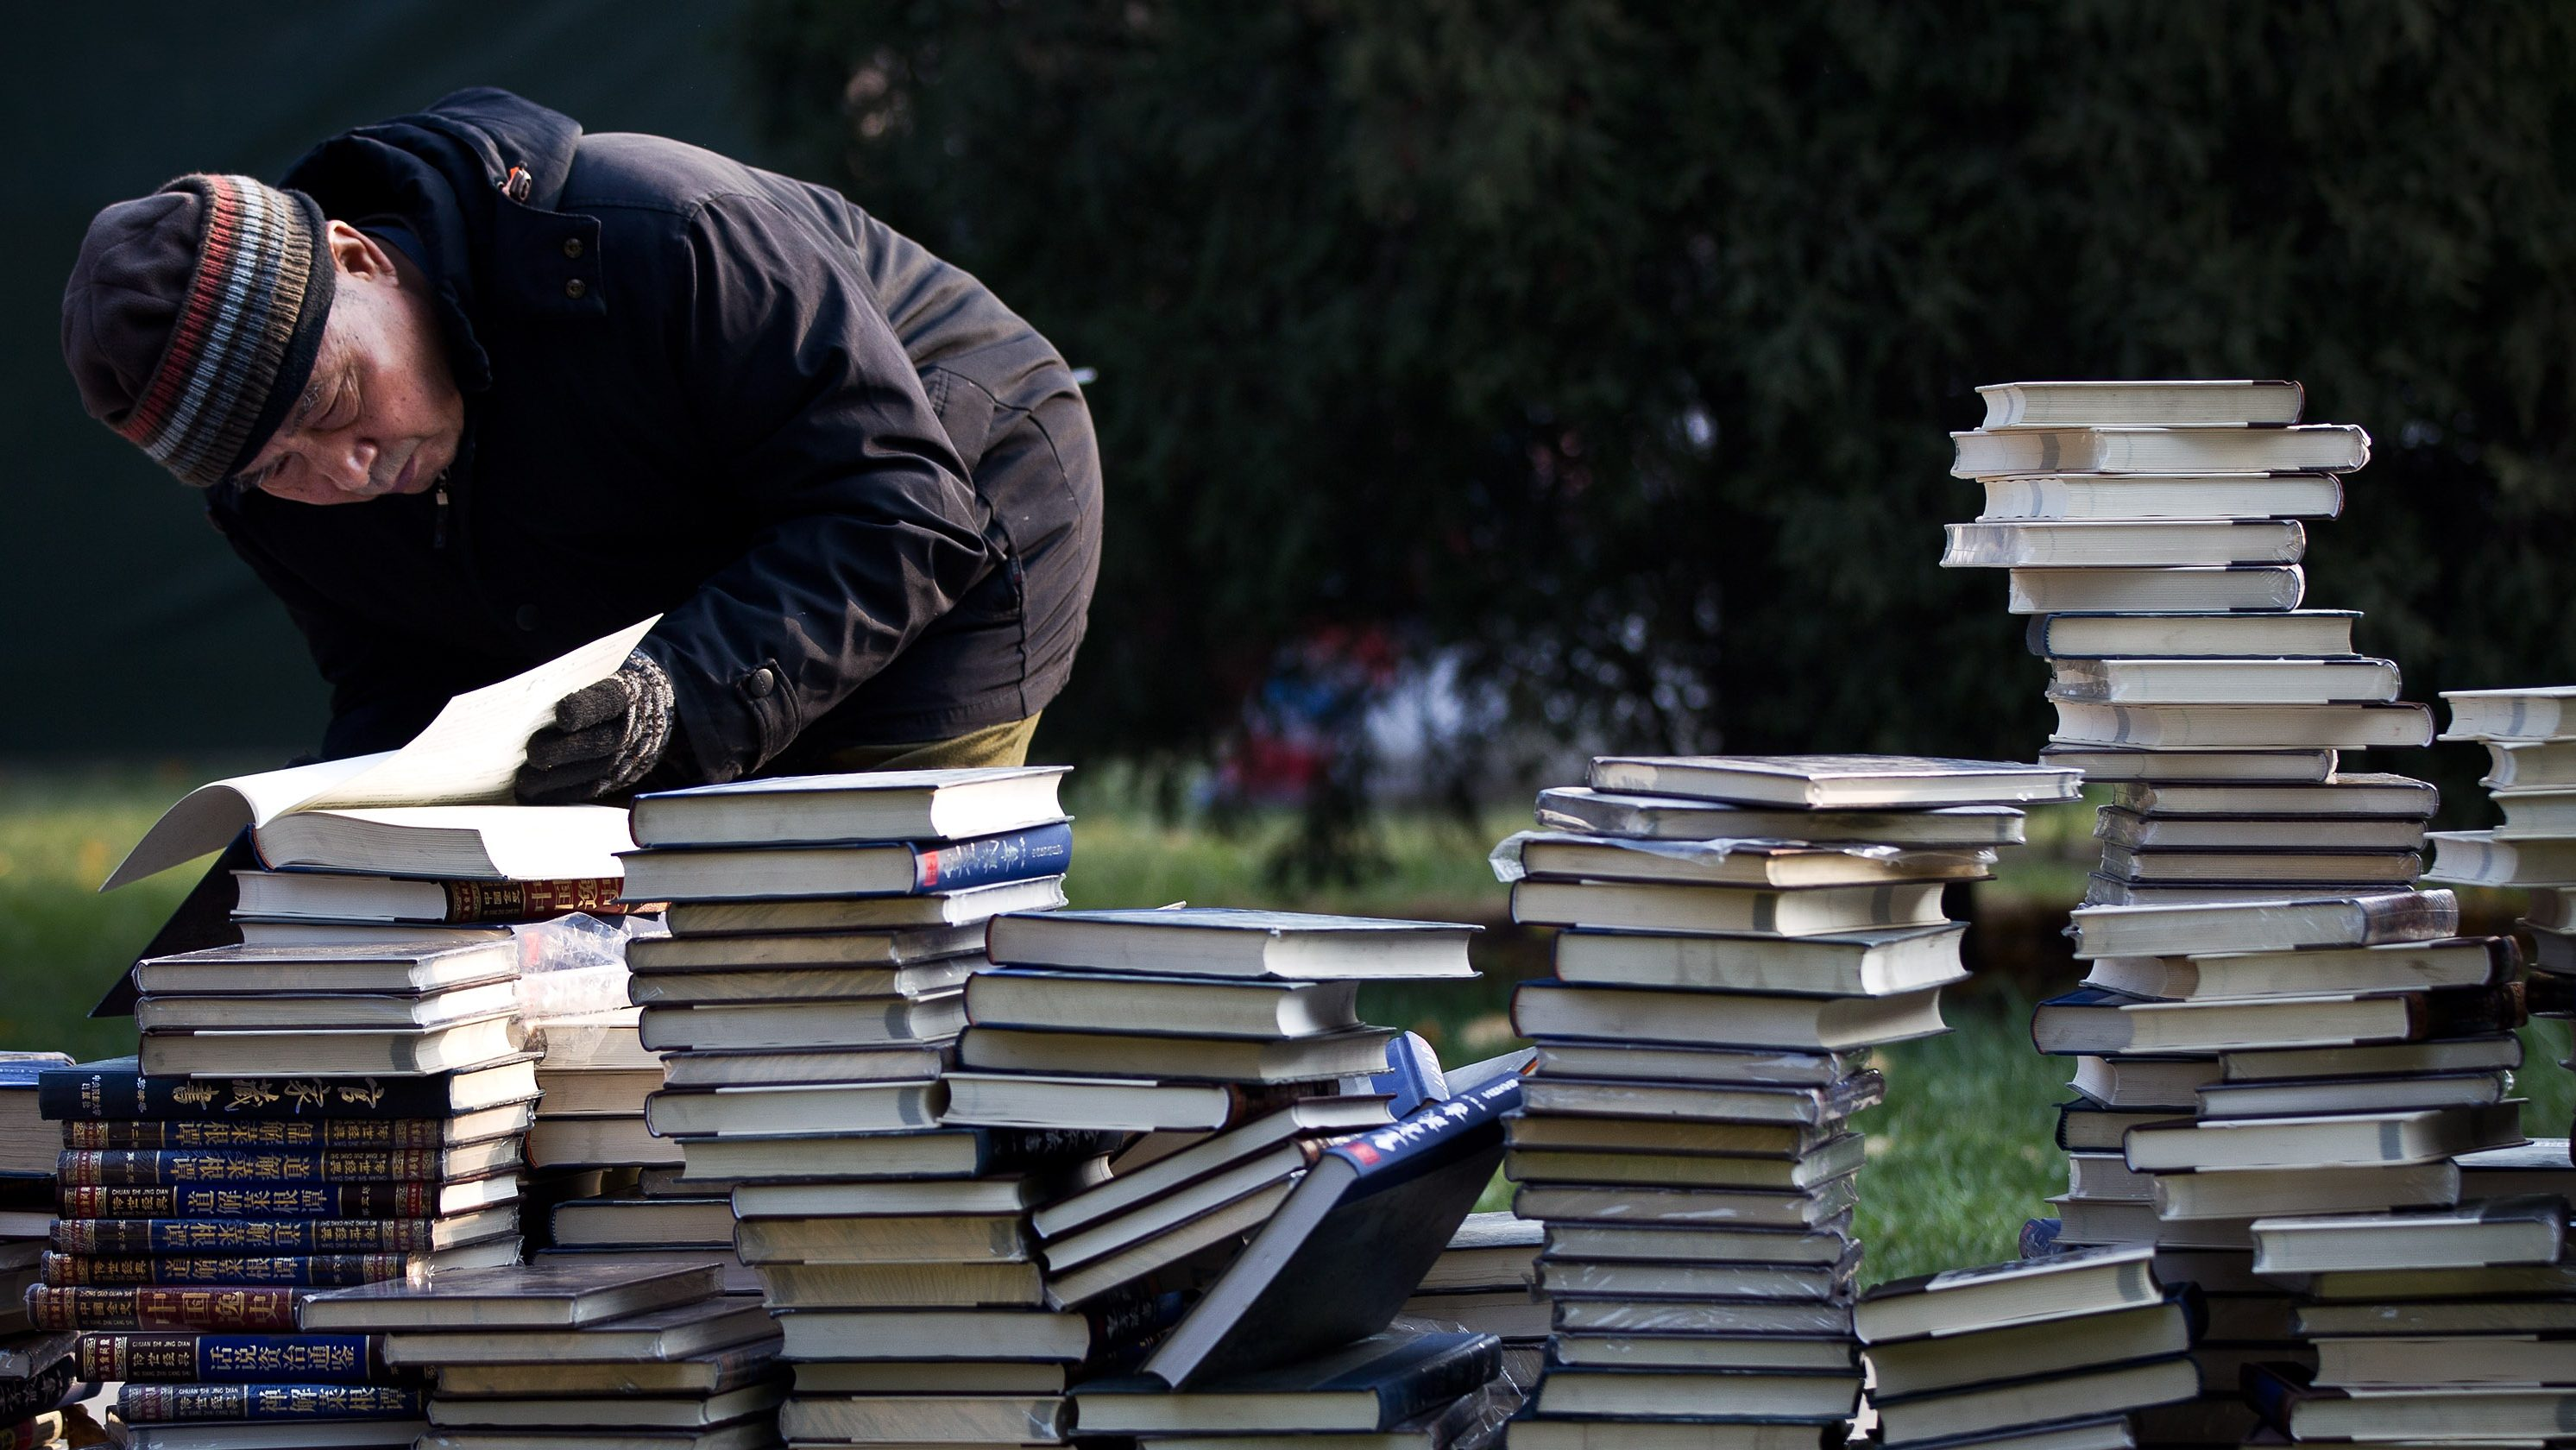 An elderly man browses one of books piled up on the grass for sale during the Winter Book Fair held at Ditan Park in Beijing, Sunday, Nov. 27, 2011.